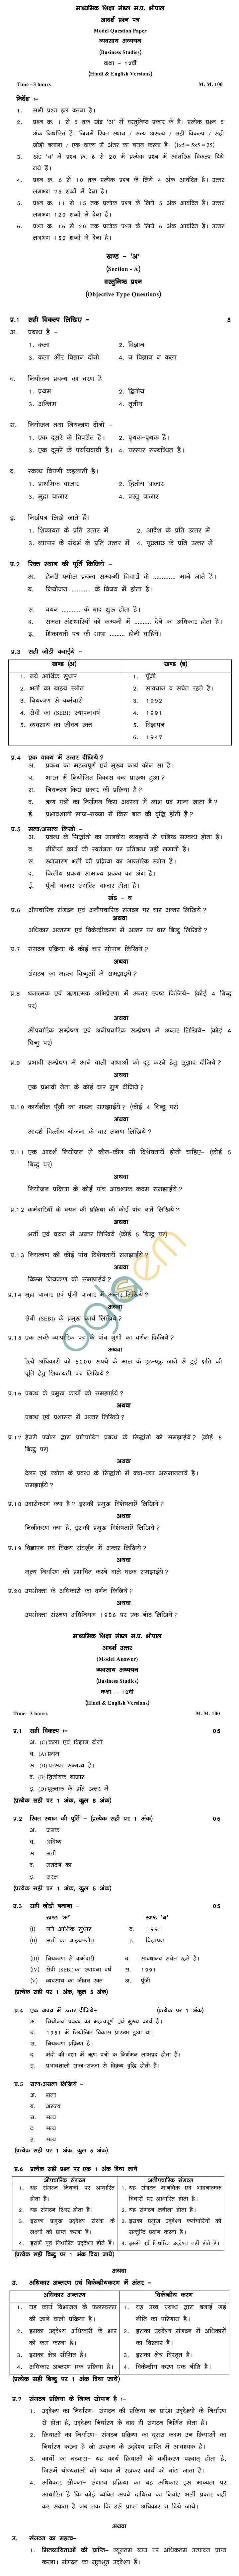 MP Board Class XII Business Studies Model Questions & Answers - Set 1